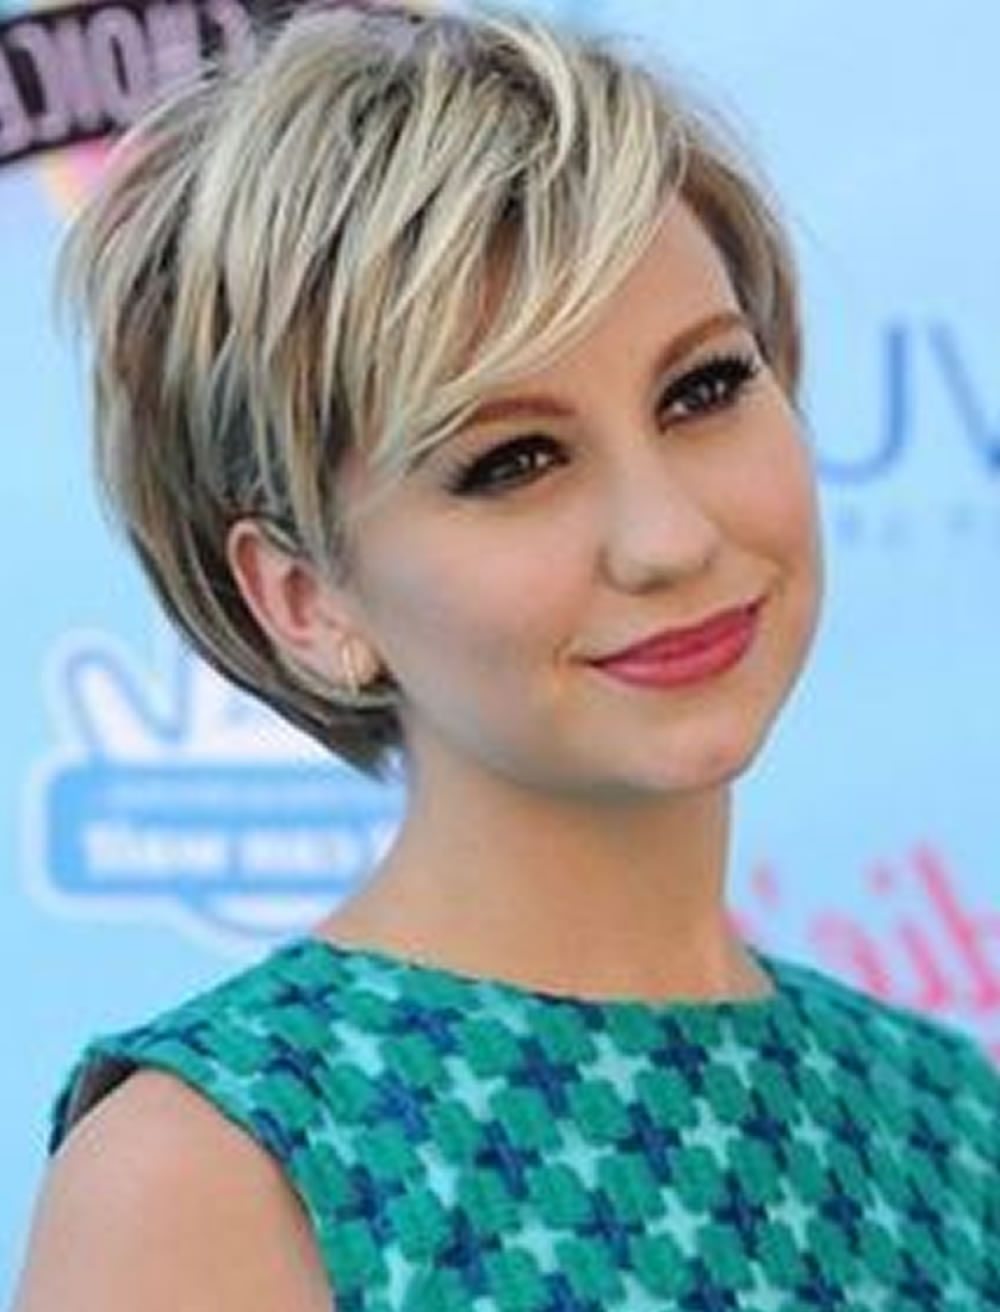 Haircuts For Round Face Thin Hair Ideas For 2018 With Regard To 2018 Pixie Hairstyles On Round Faces (View 8 of 15)